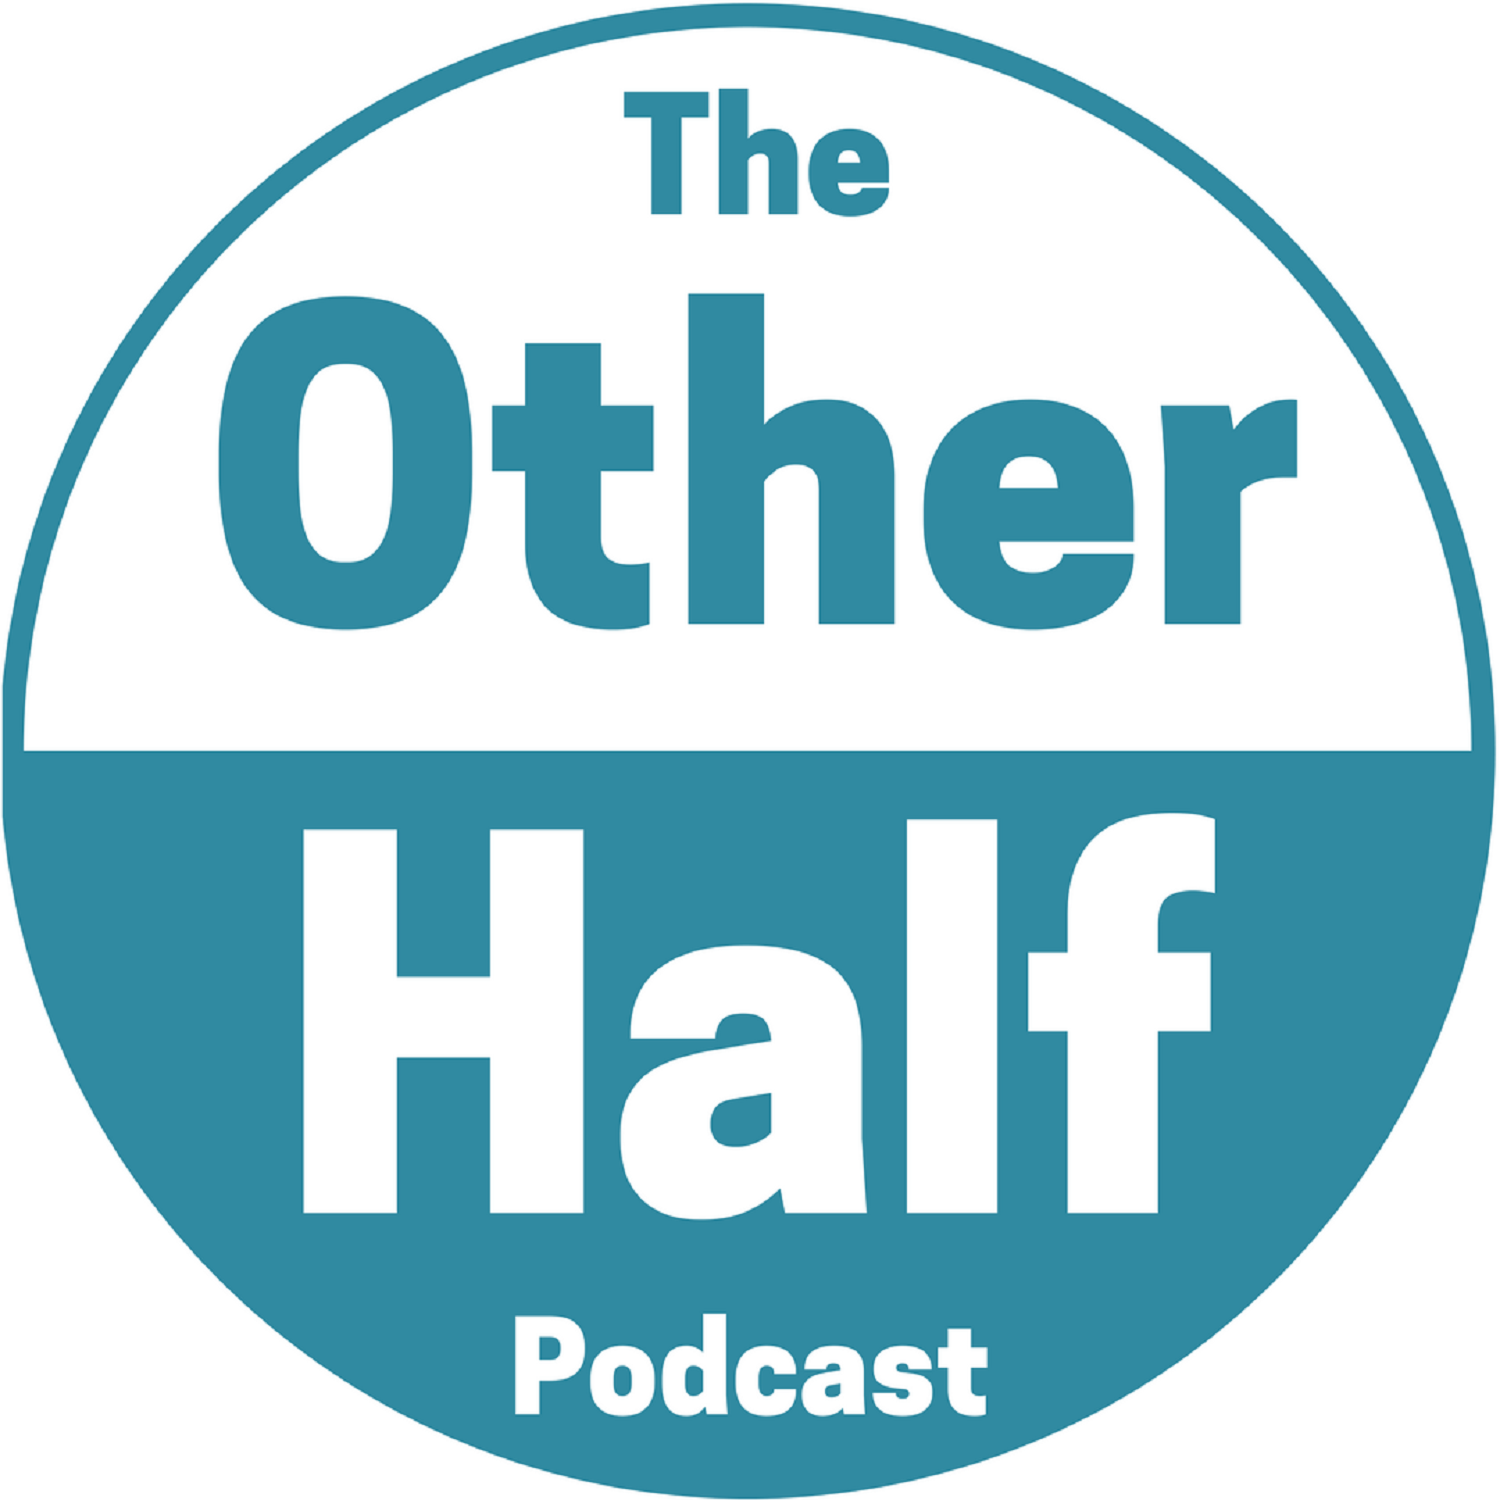 Introducing The Other Half